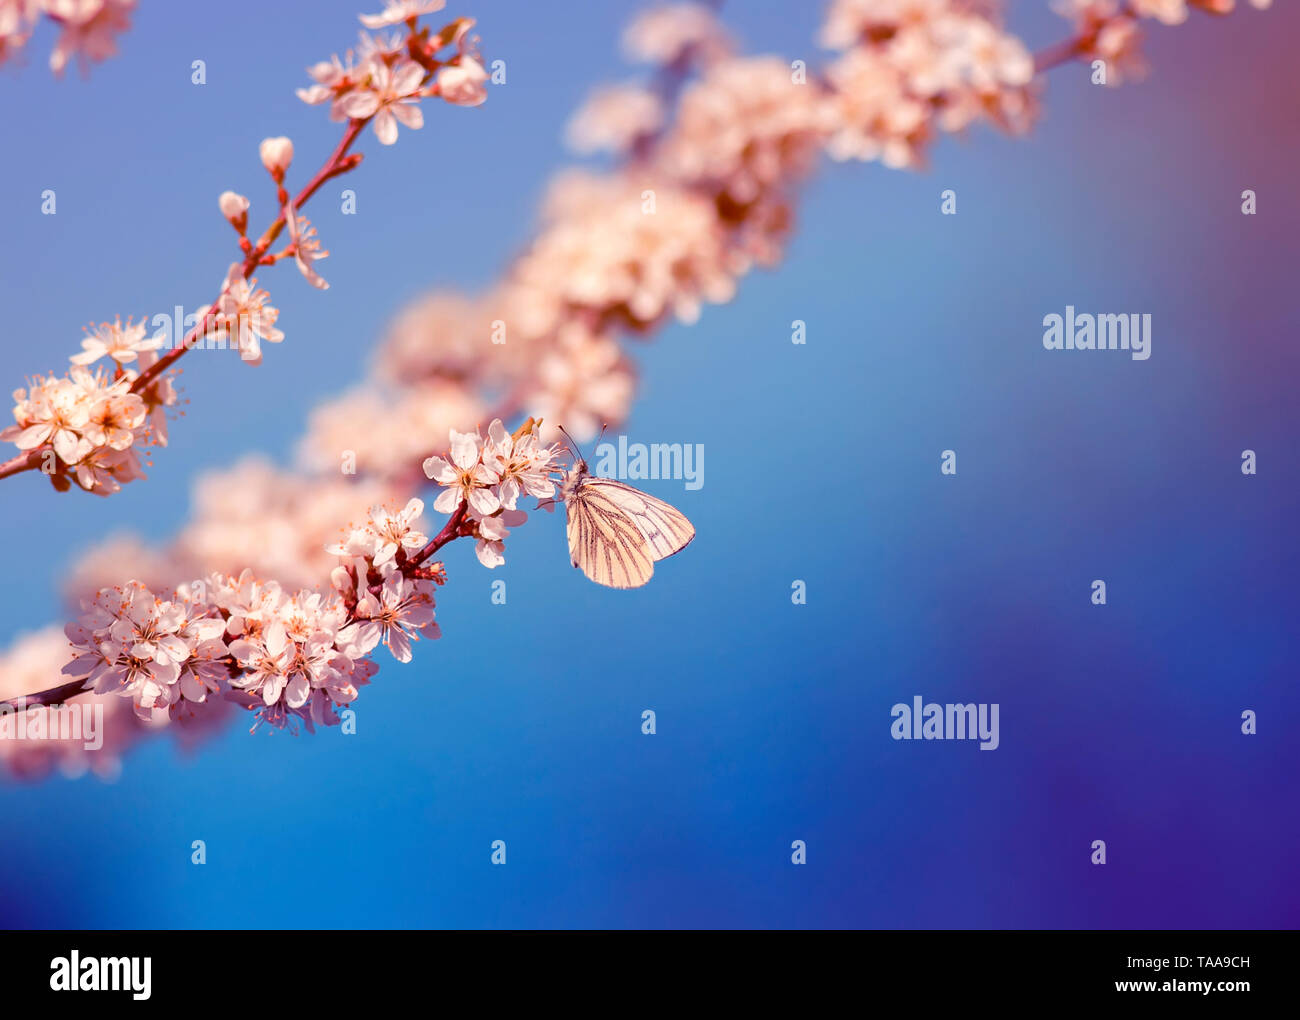 beautiful little butterfly sits on branches with white shrub buds blooming in May warm sunny garden on the background of bright blue sky - Stock Image